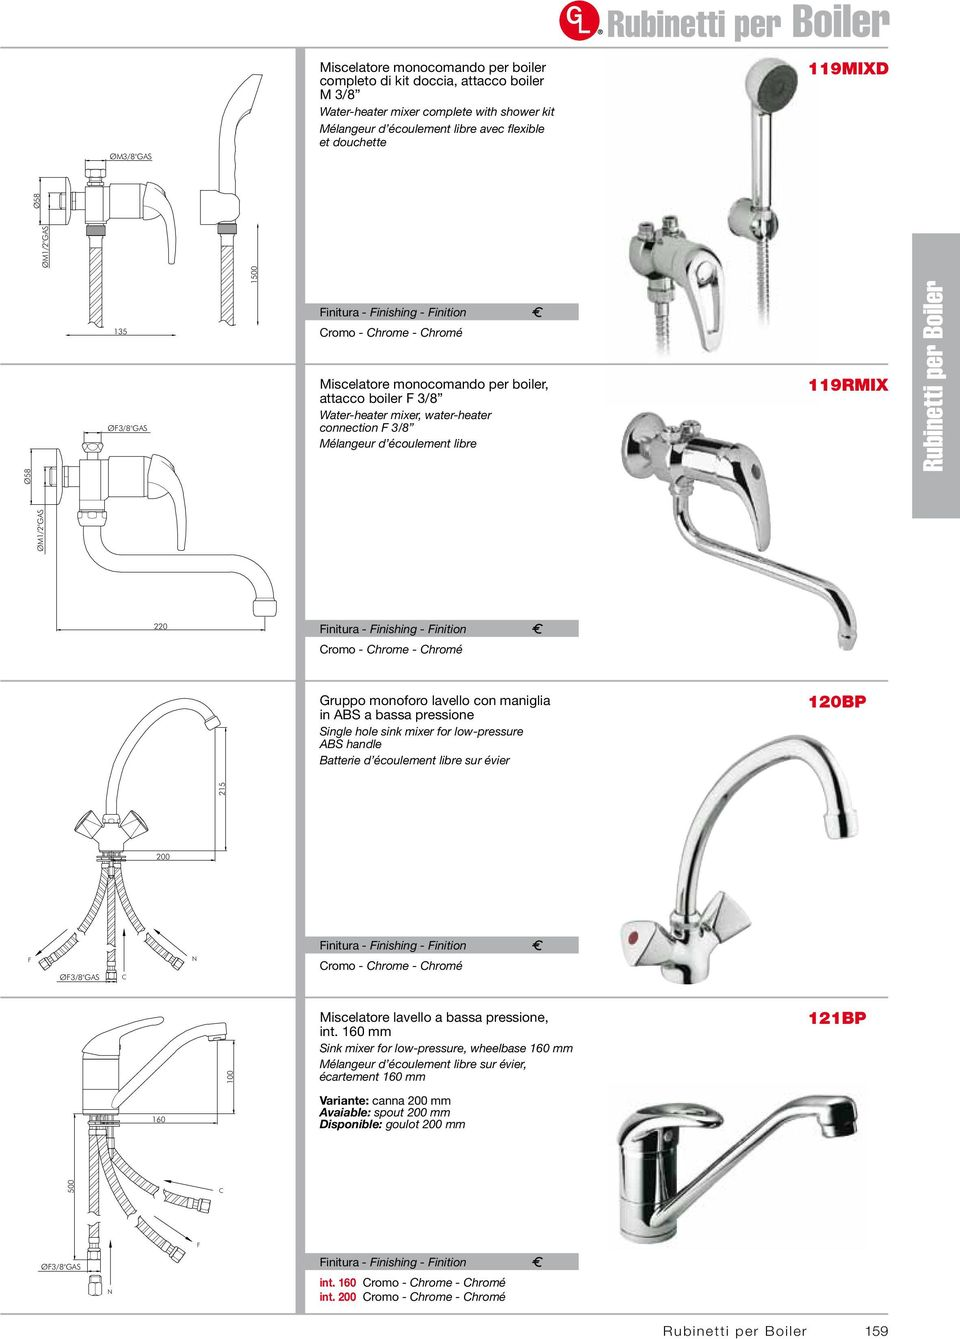 "Gruppo monoforo lavello con maniglia in ABS a bassa pressione Single hole sink mixer for low-pressure ABS handle Batterie d écoulement libre sur évier 120BP 215 1500 ØM1/2""GAS Ø58 135 ØF3/8""GAS"